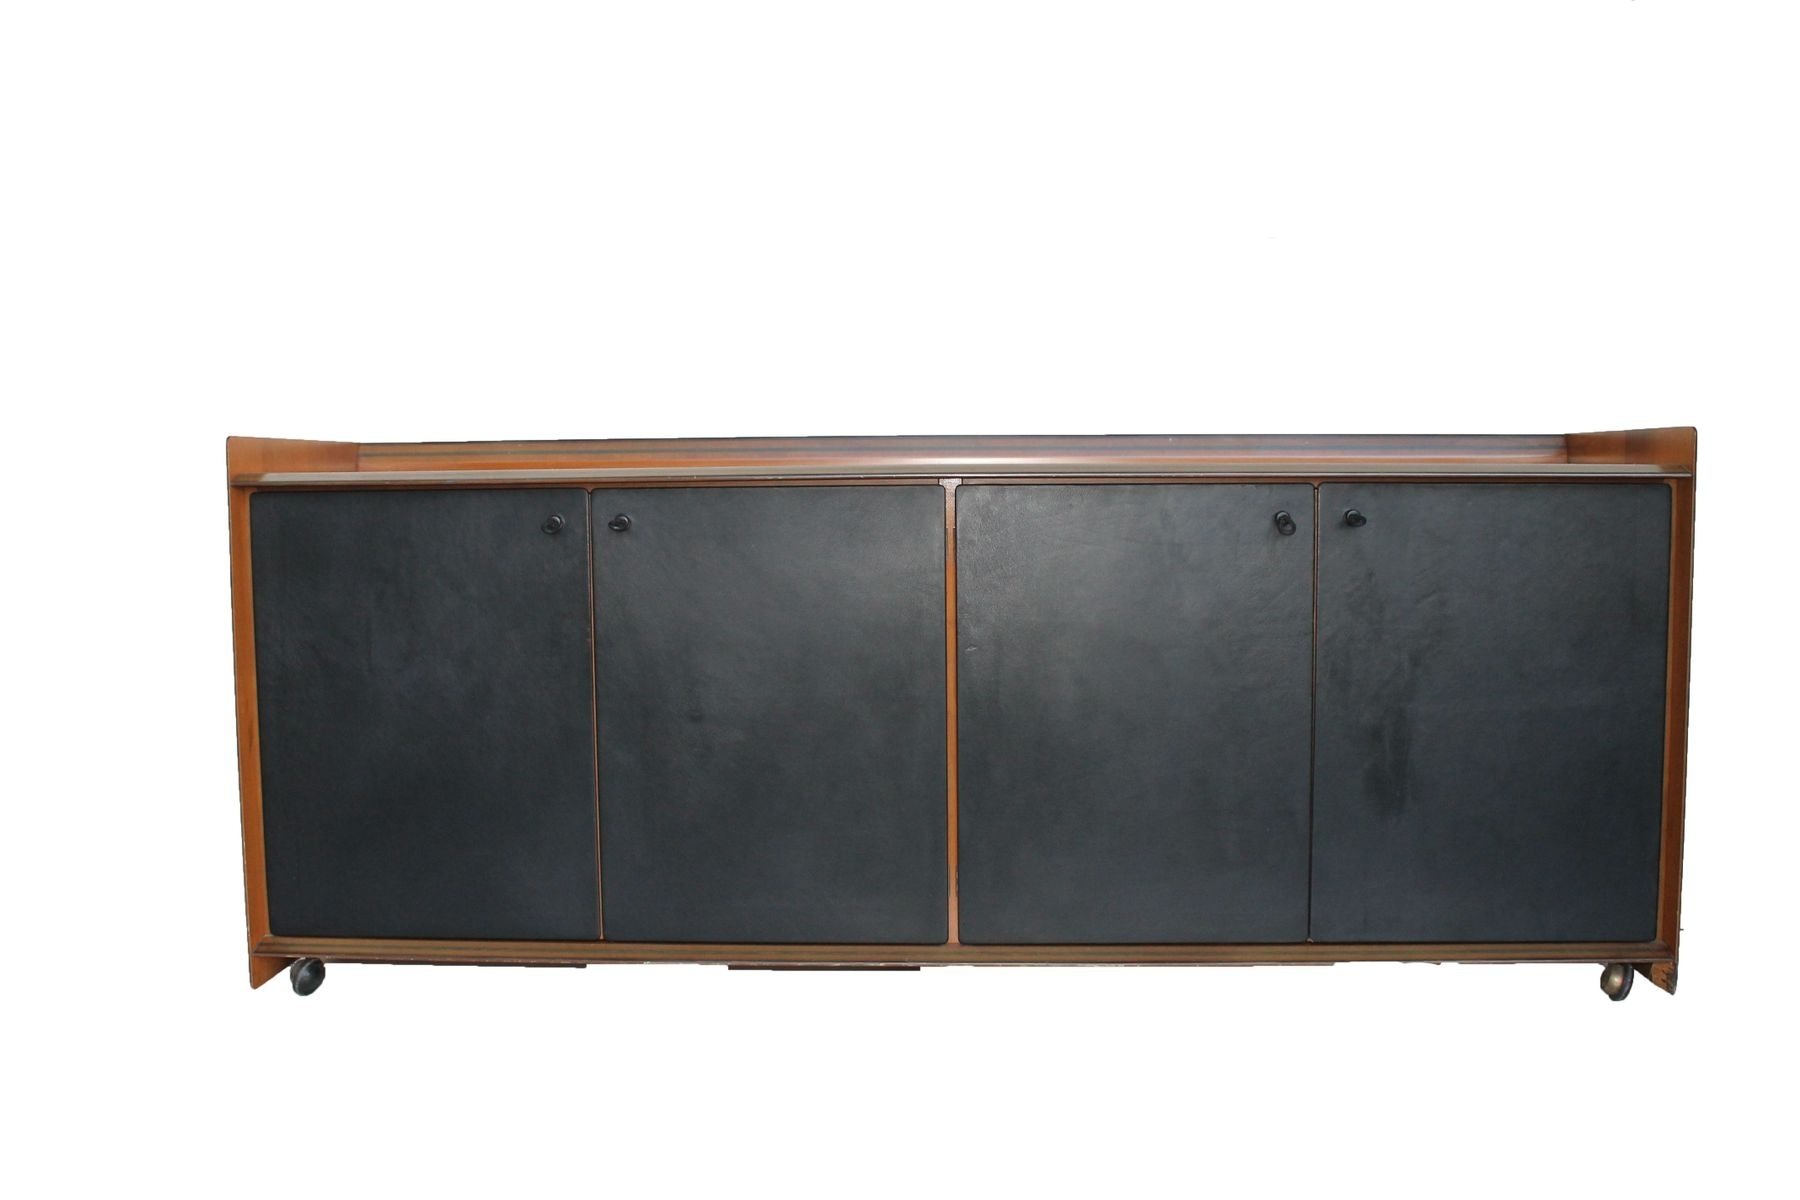 Artona Sideboardafra Tobia Scarpa For Maxalto, 1978 For Sale At inside Rossi Large Sideboards (Image 4 of 30)